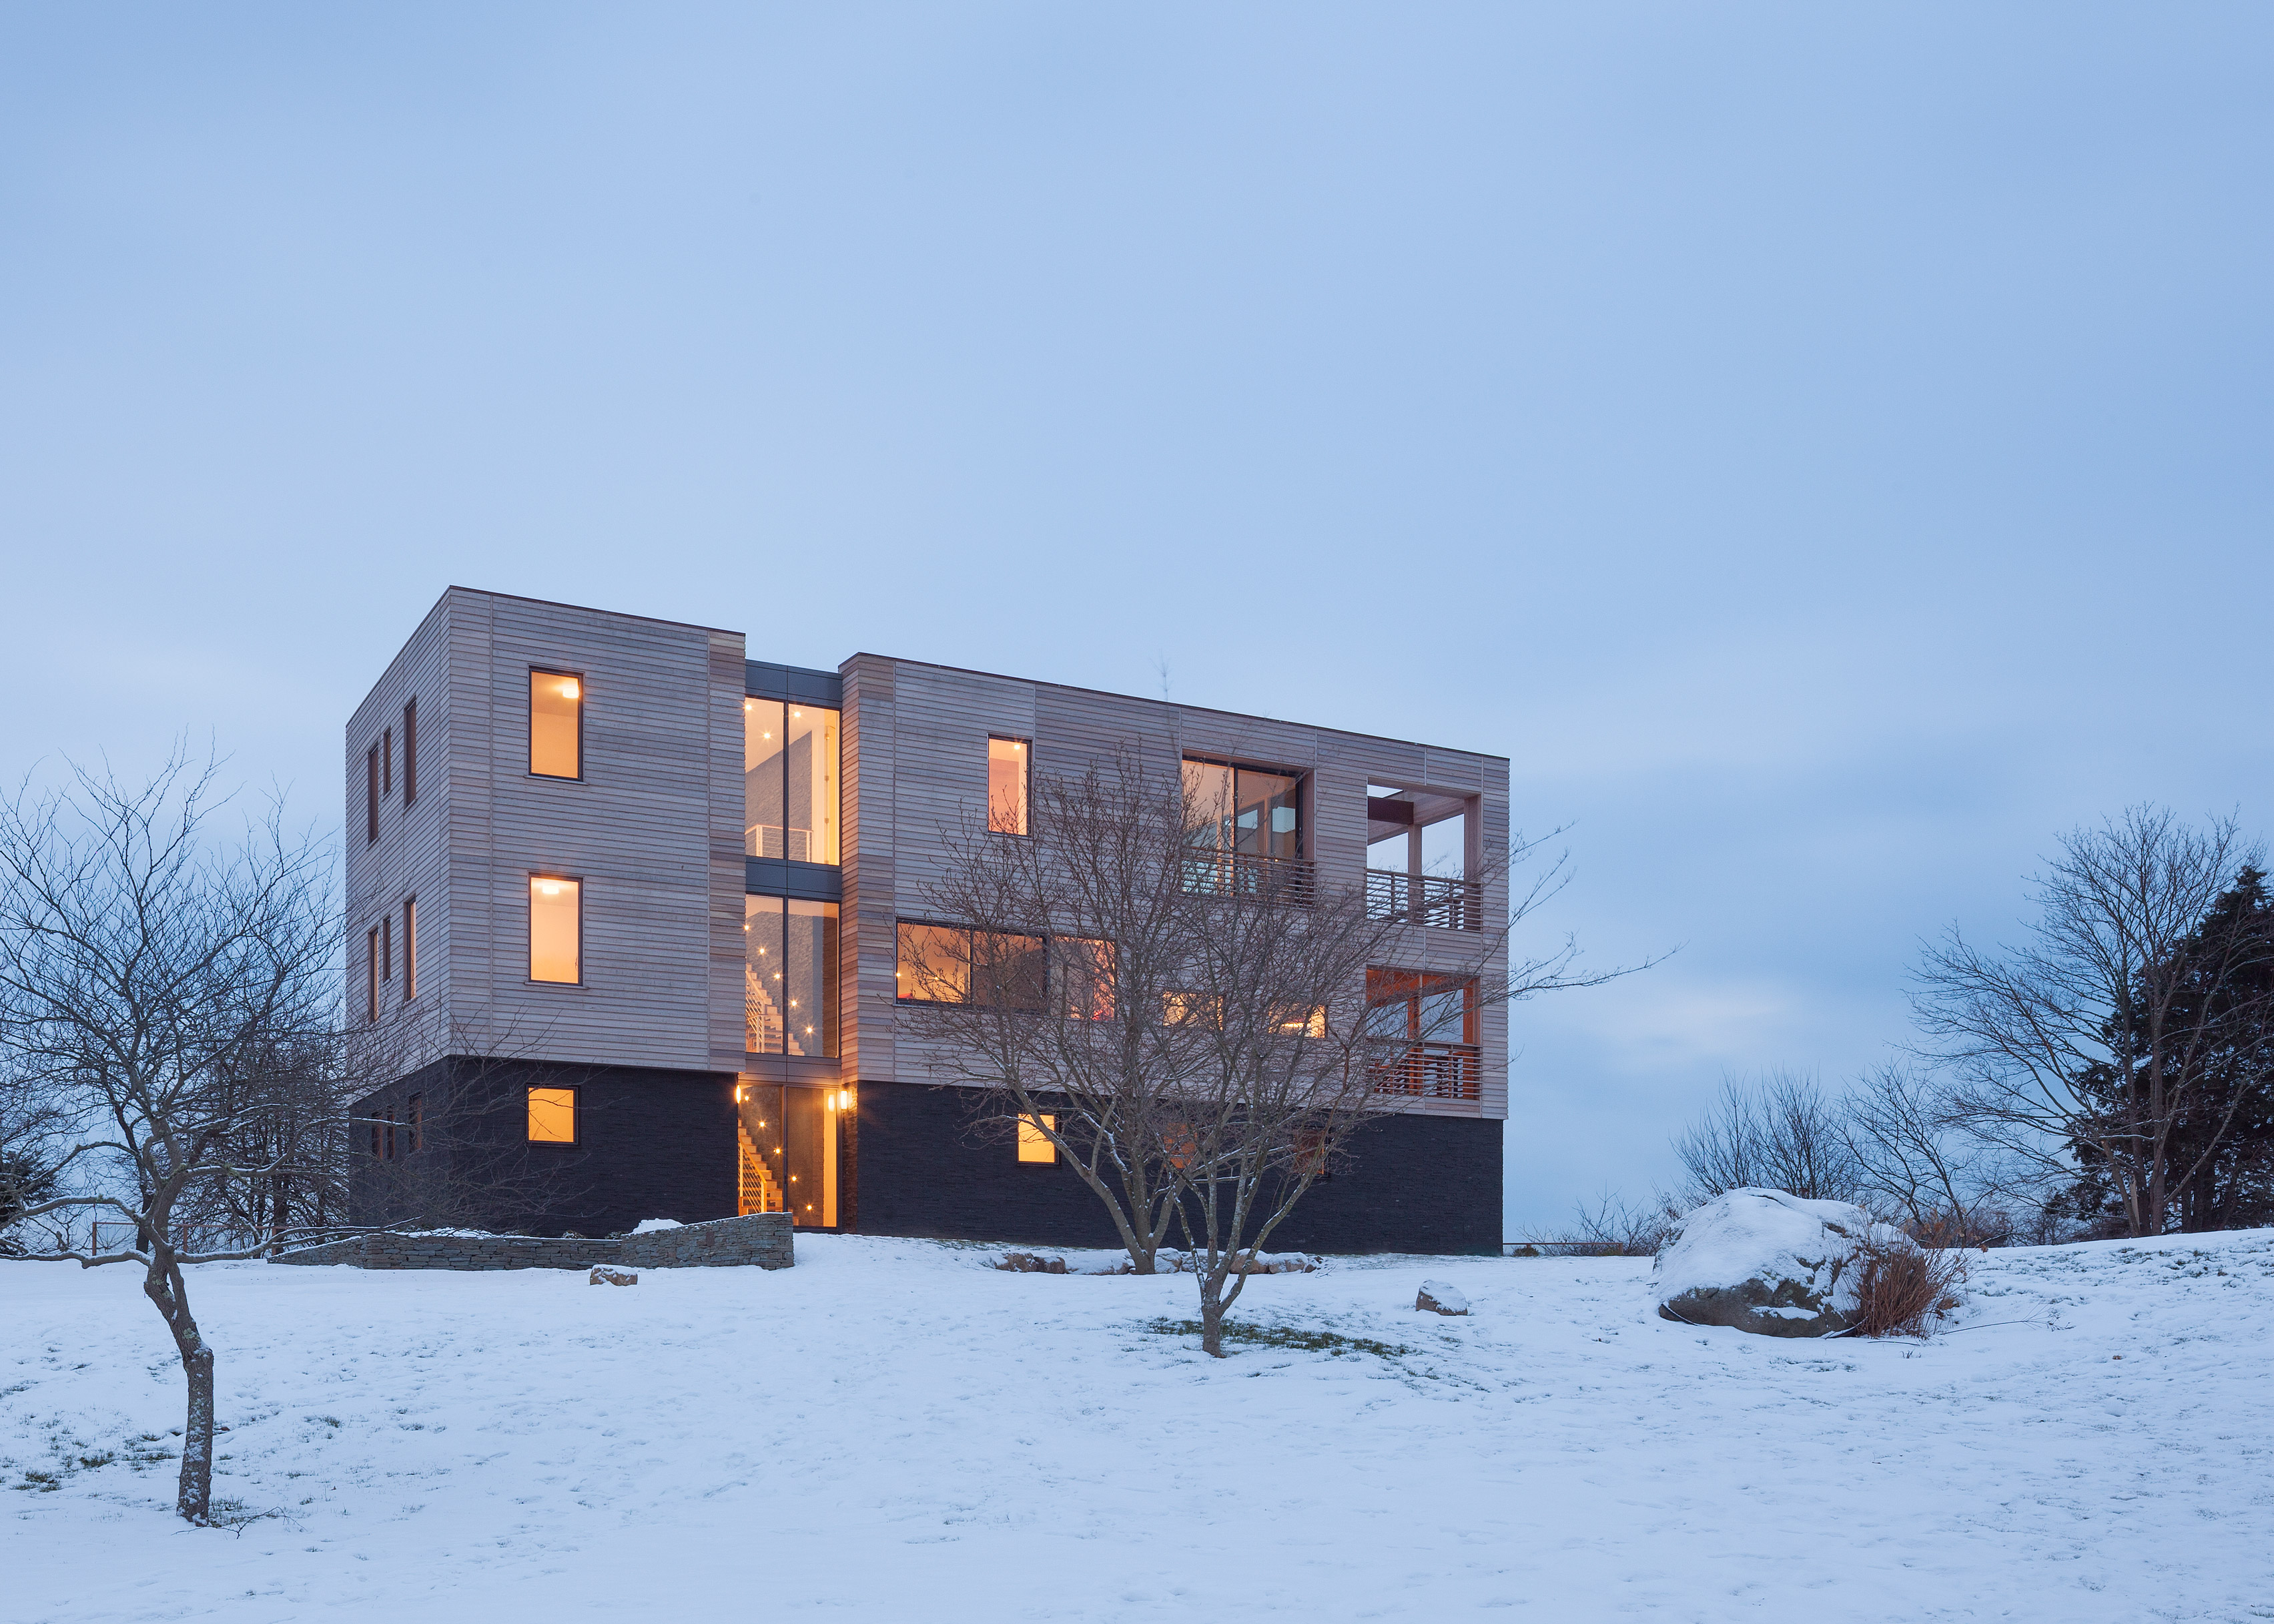 Watch Hill House by Lubrano Ciavarra Architects